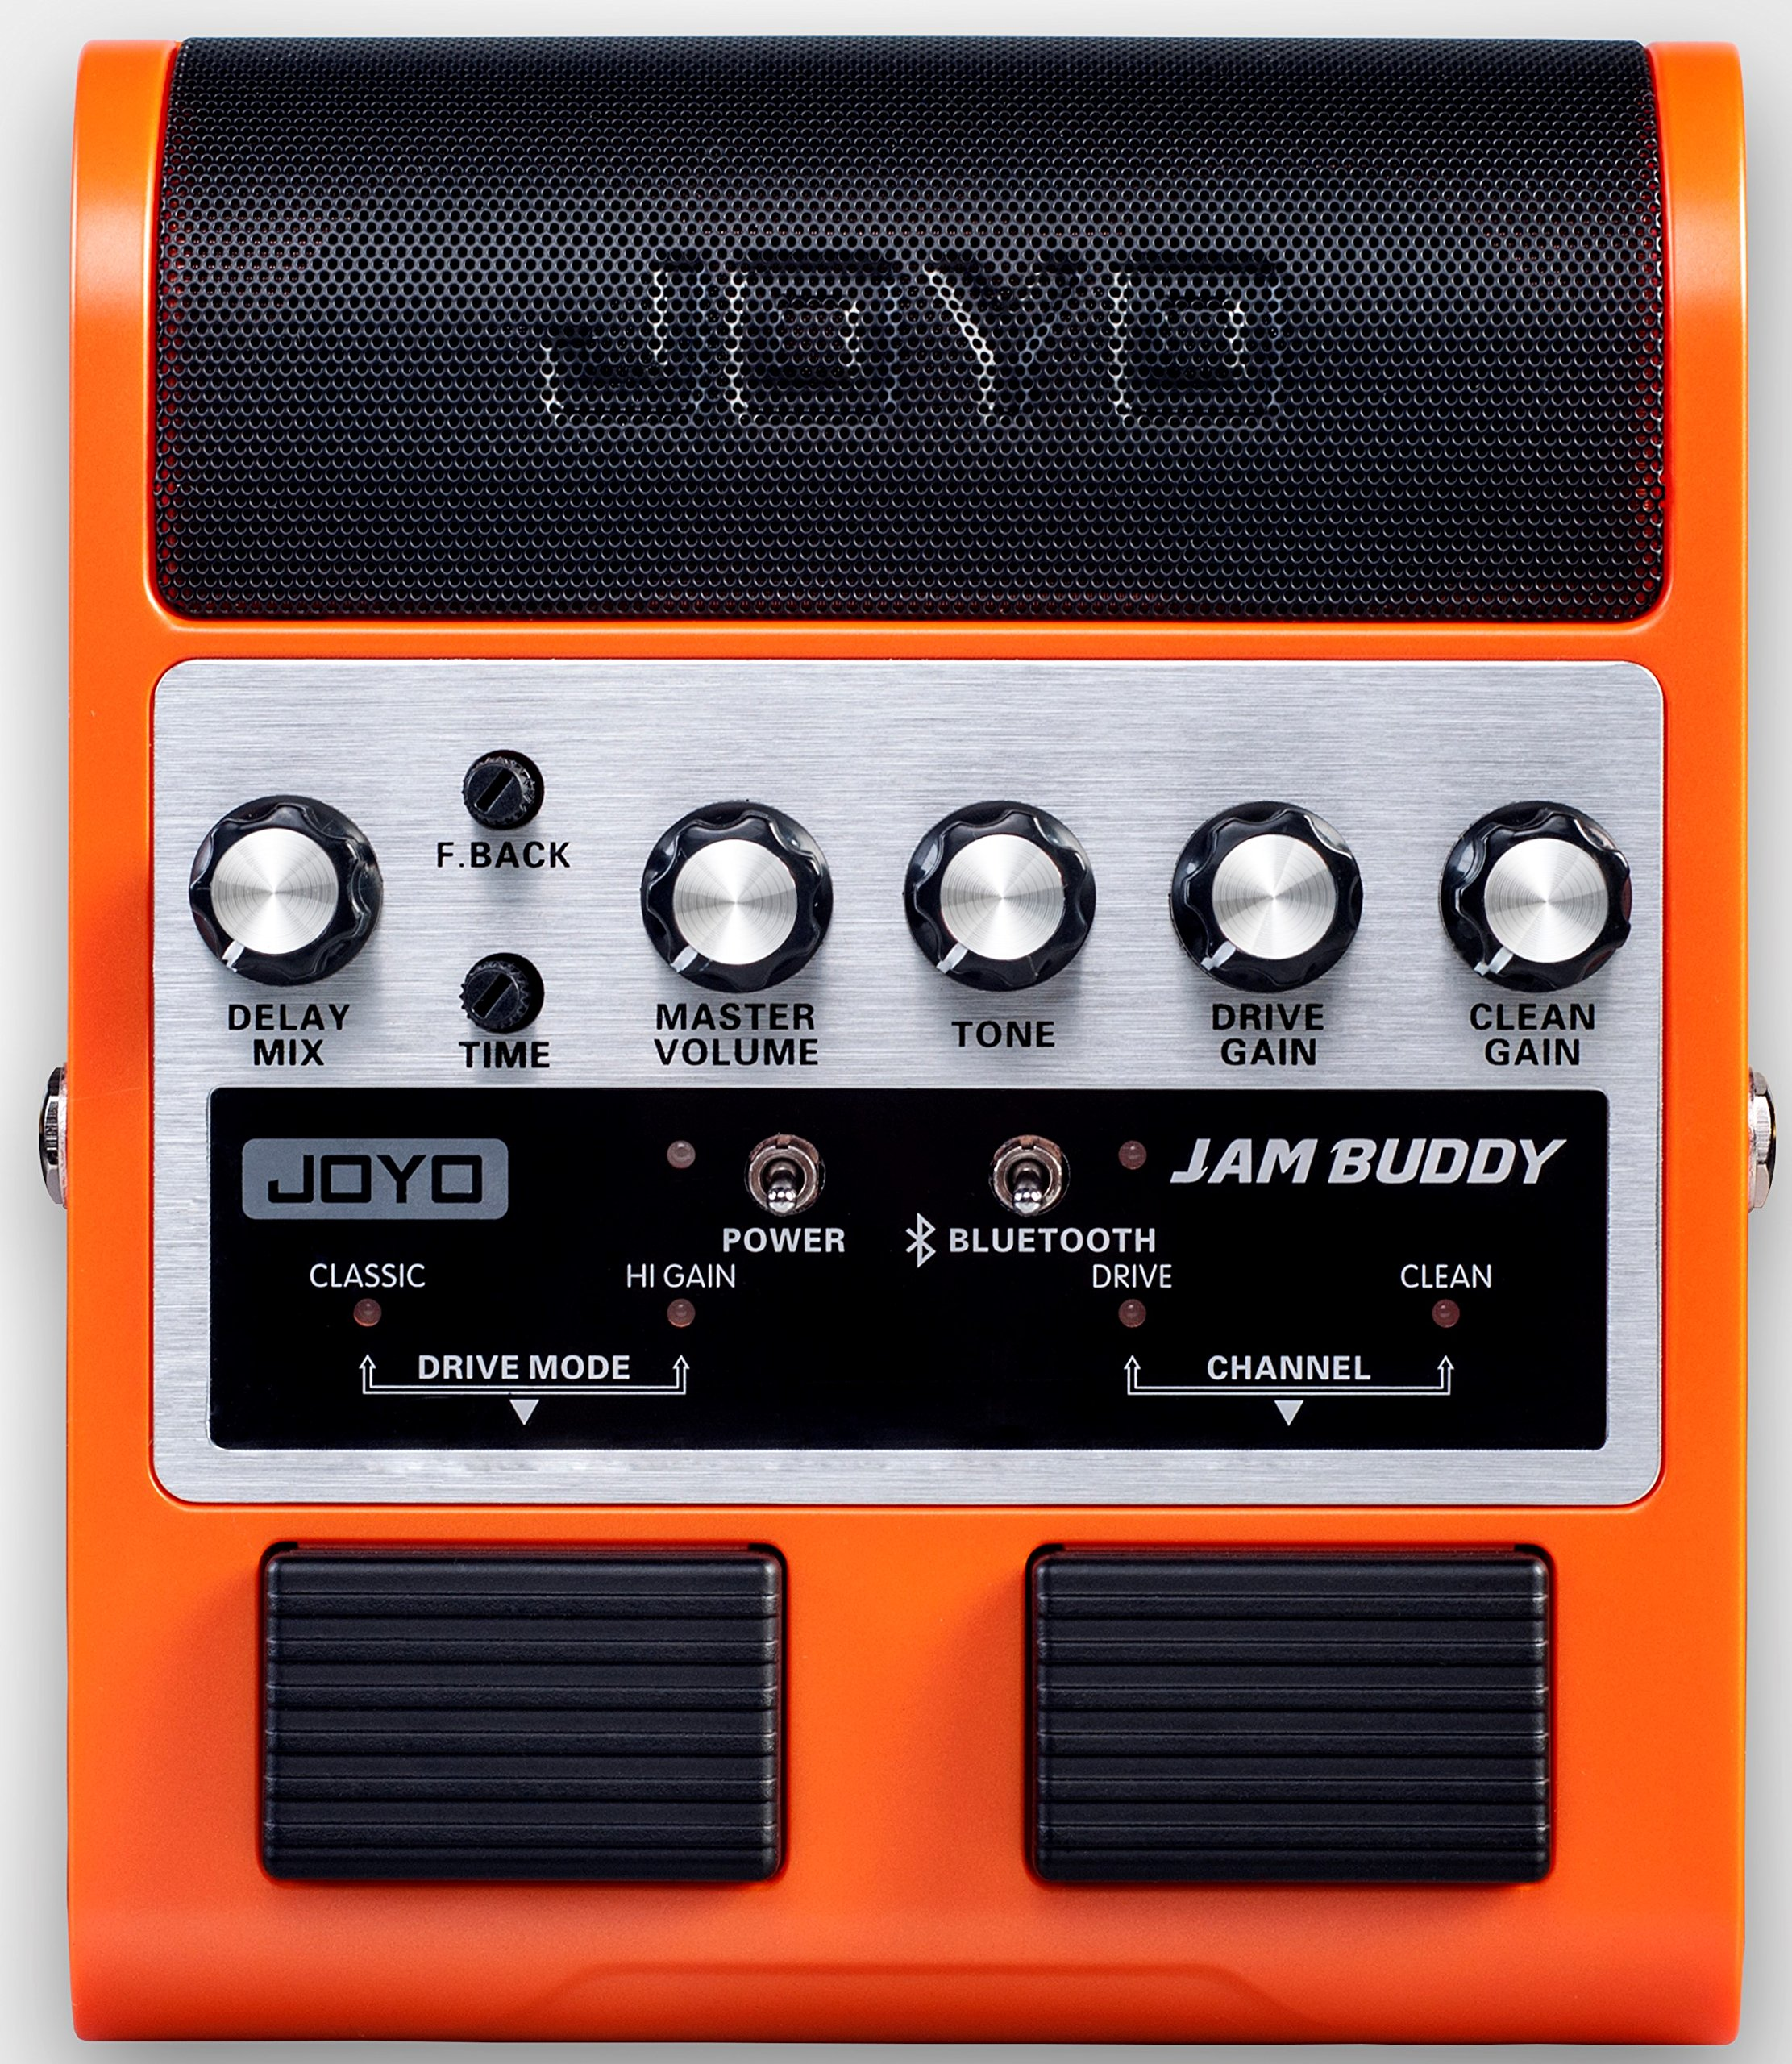 Joyo JAM BUDDY Dual channel 2x4W Pedal Guitar Amp by JOYO